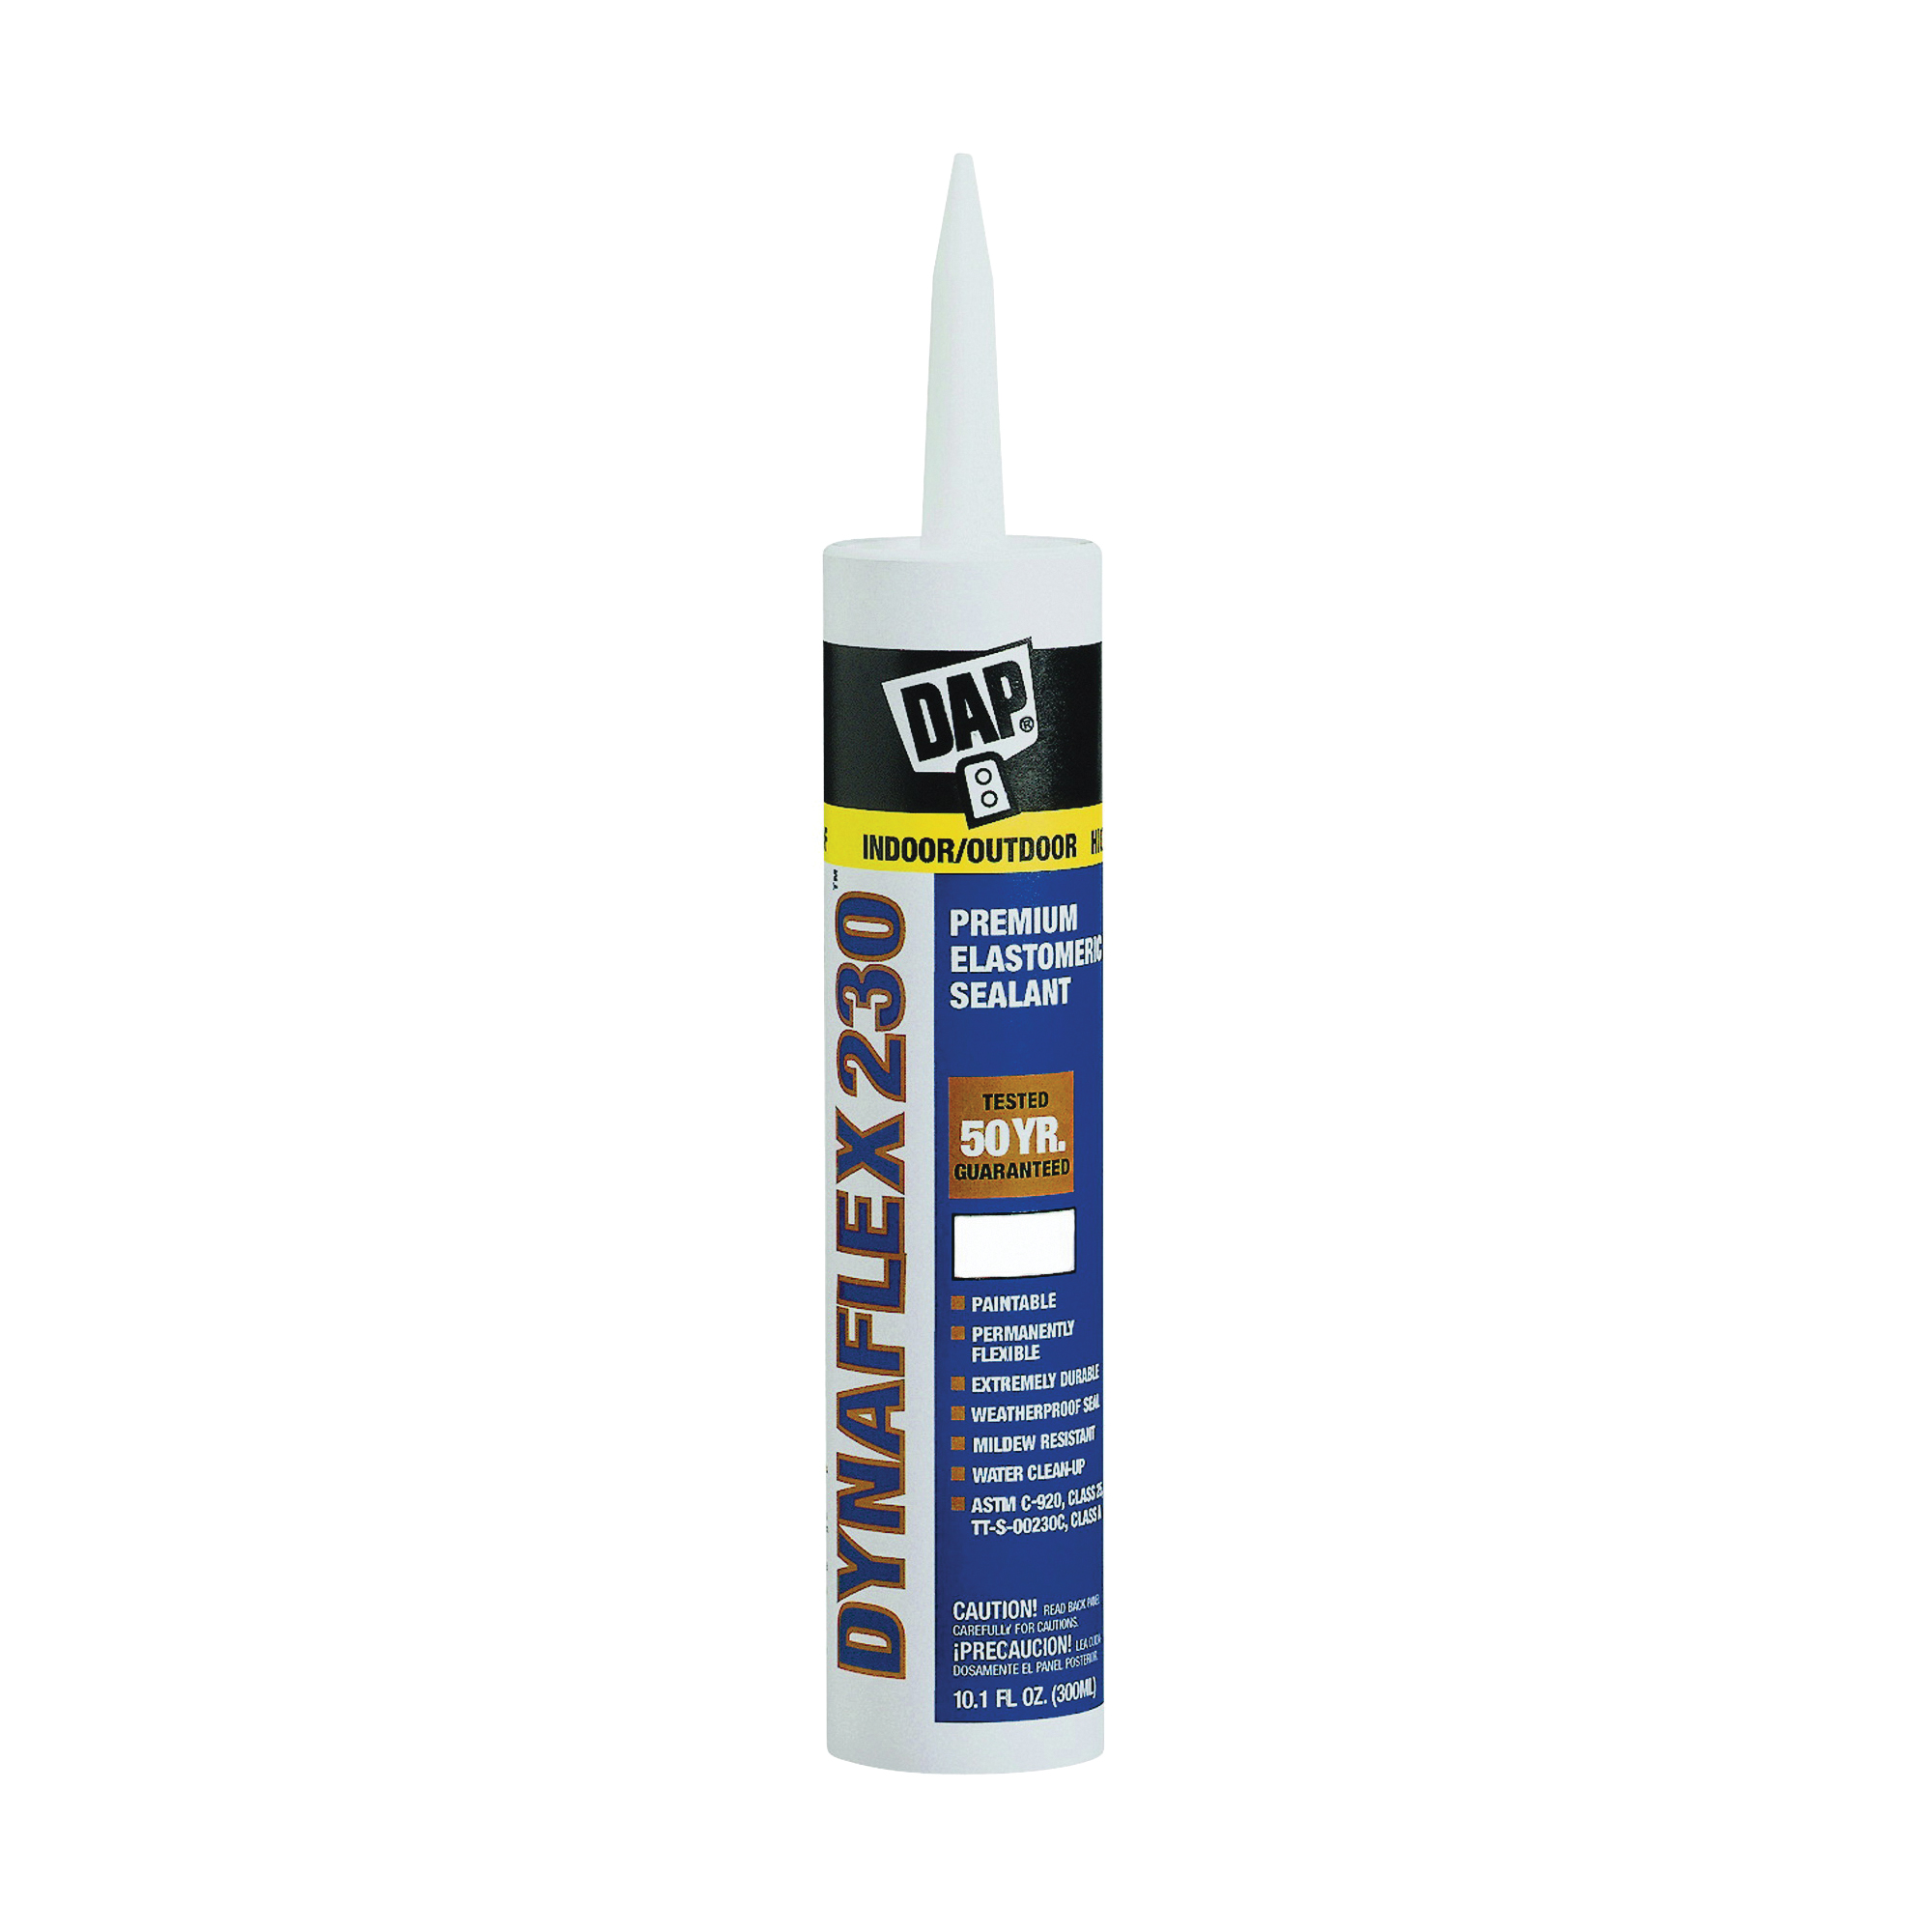 Picture of DAP 18286 Premium Sealant, Gray, 1 day Curing, 40 to 100 deg F, 10.1 oz Package, Cartridge